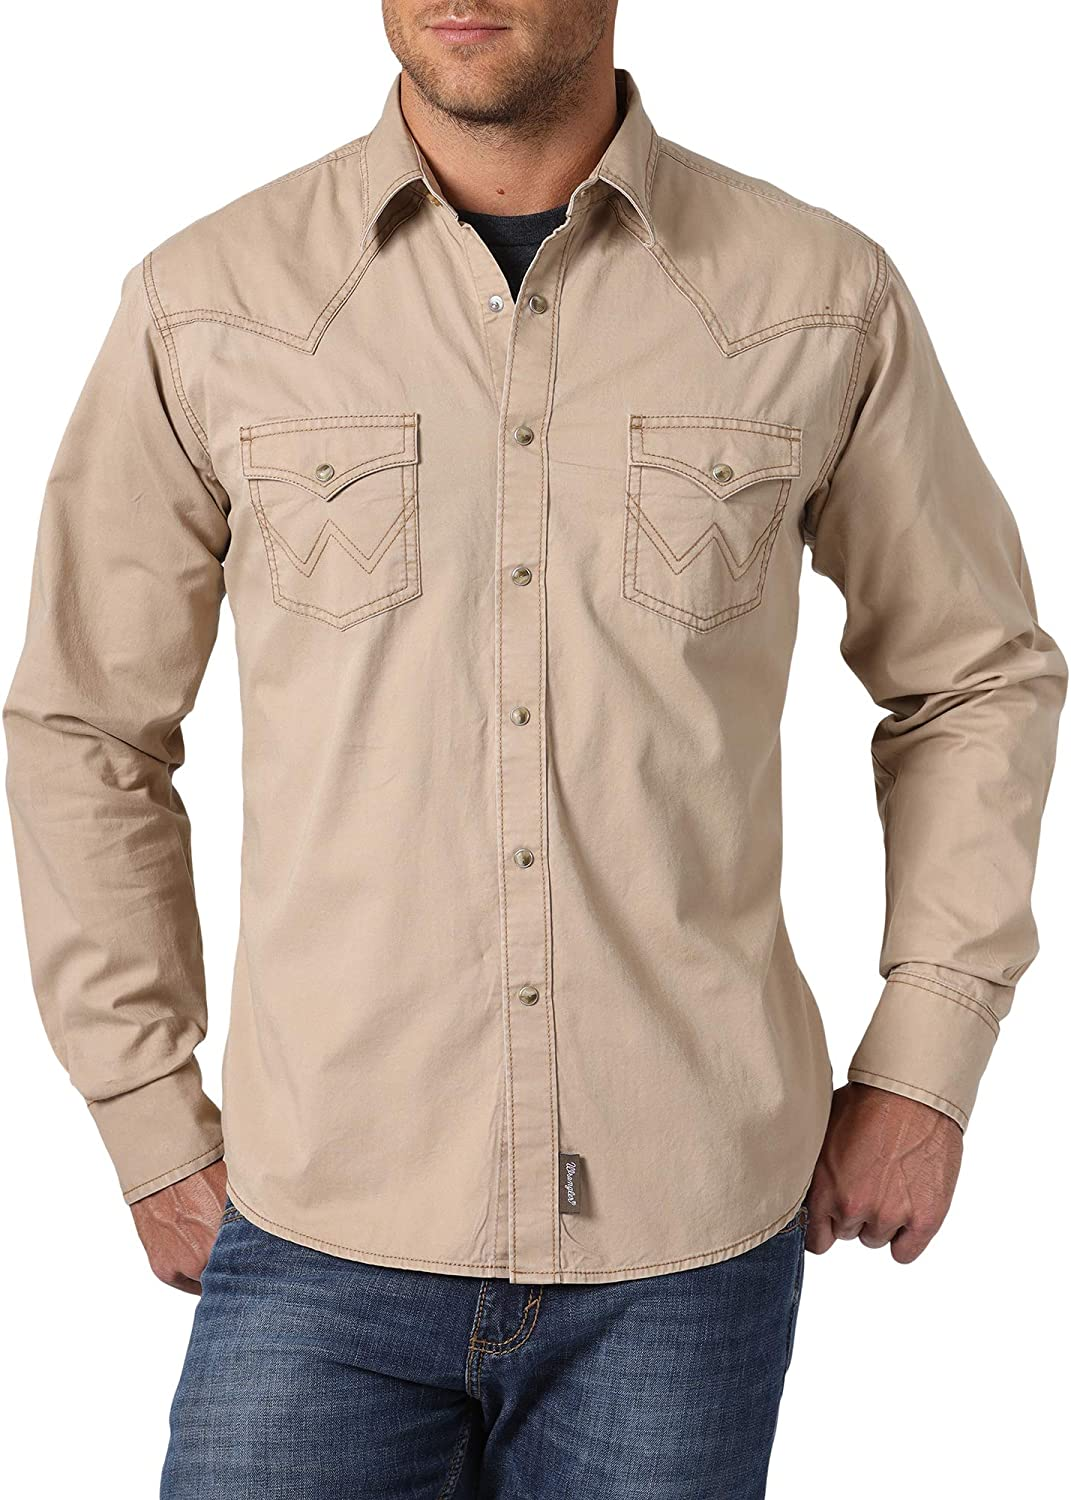 Wrangler Men's Retro Two Pocket Long Sleeve Snap Shirt